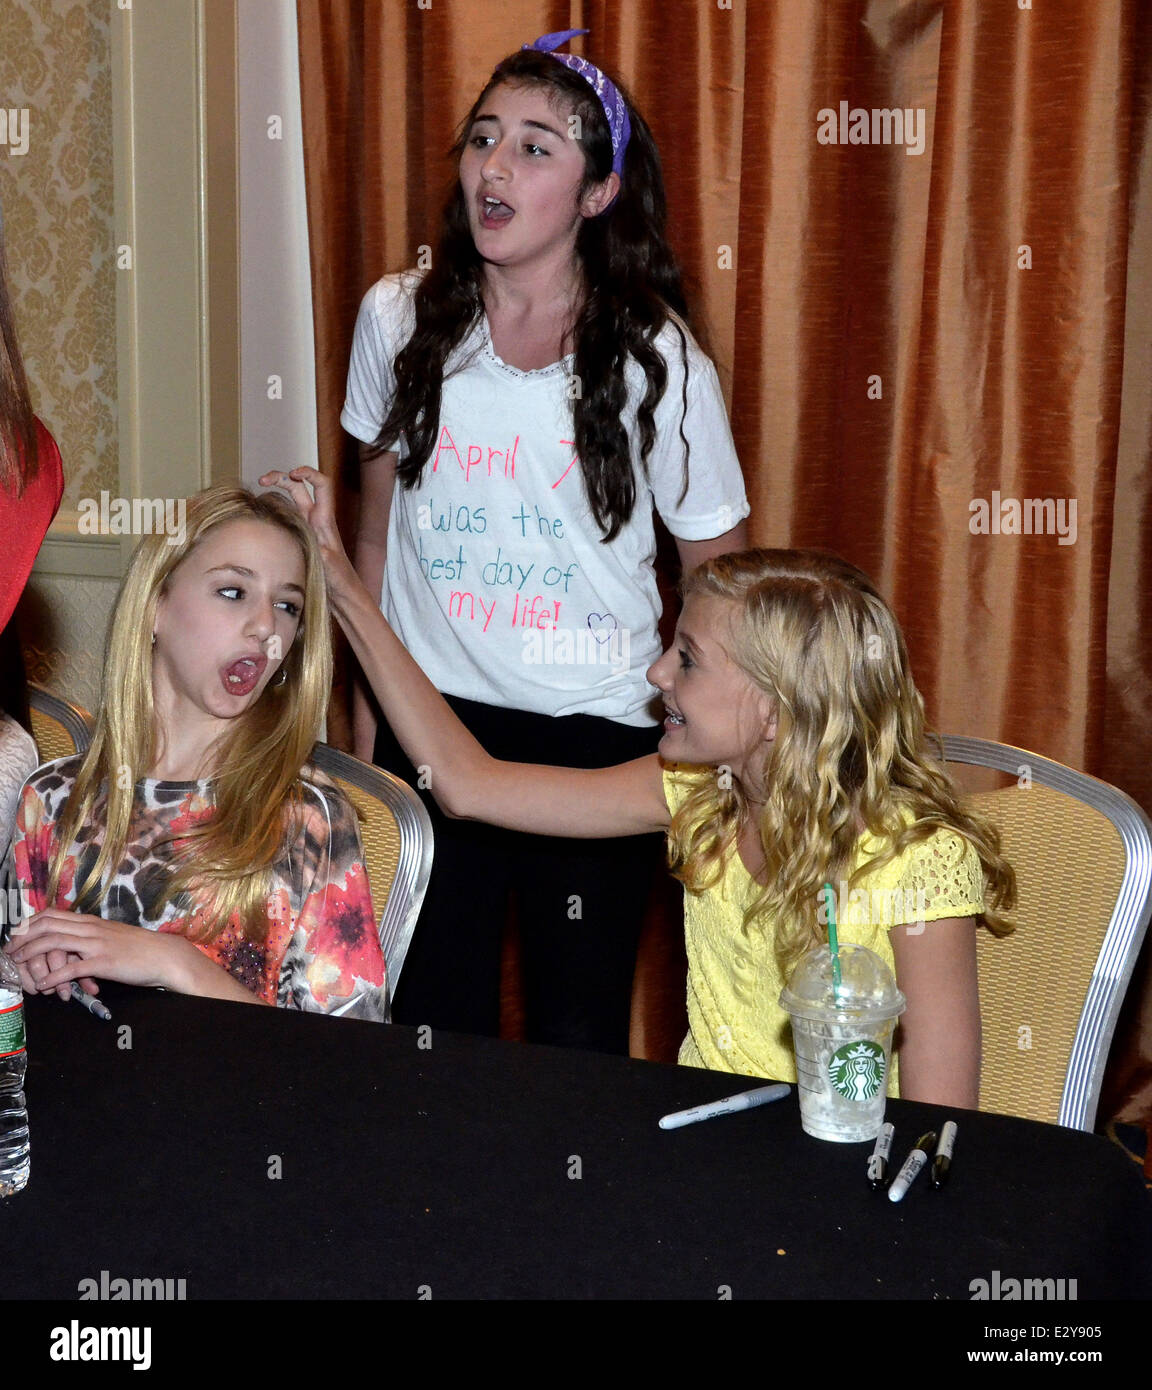 Chloe lukasiak paige hyland hyland stock photos chloe lukasiak cast members of the reality show dance moms attend a meet and greet at m4hsunfo